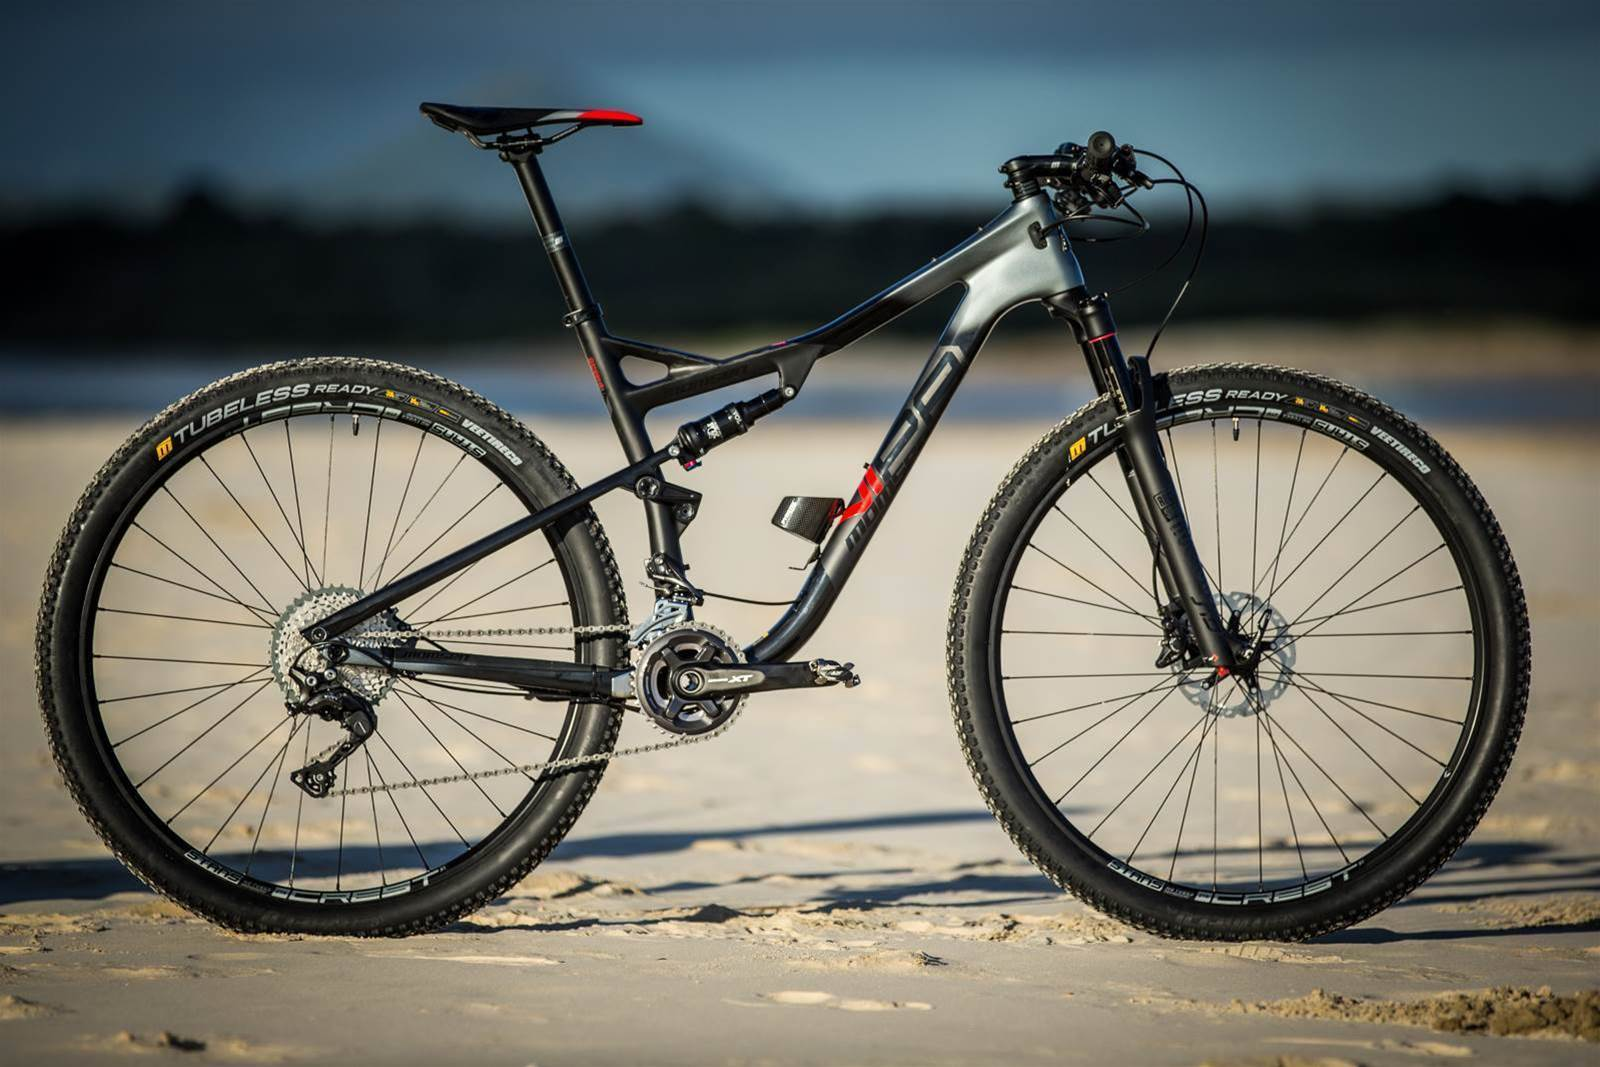 FIRST LOOK: Momsen Vipa Race Two